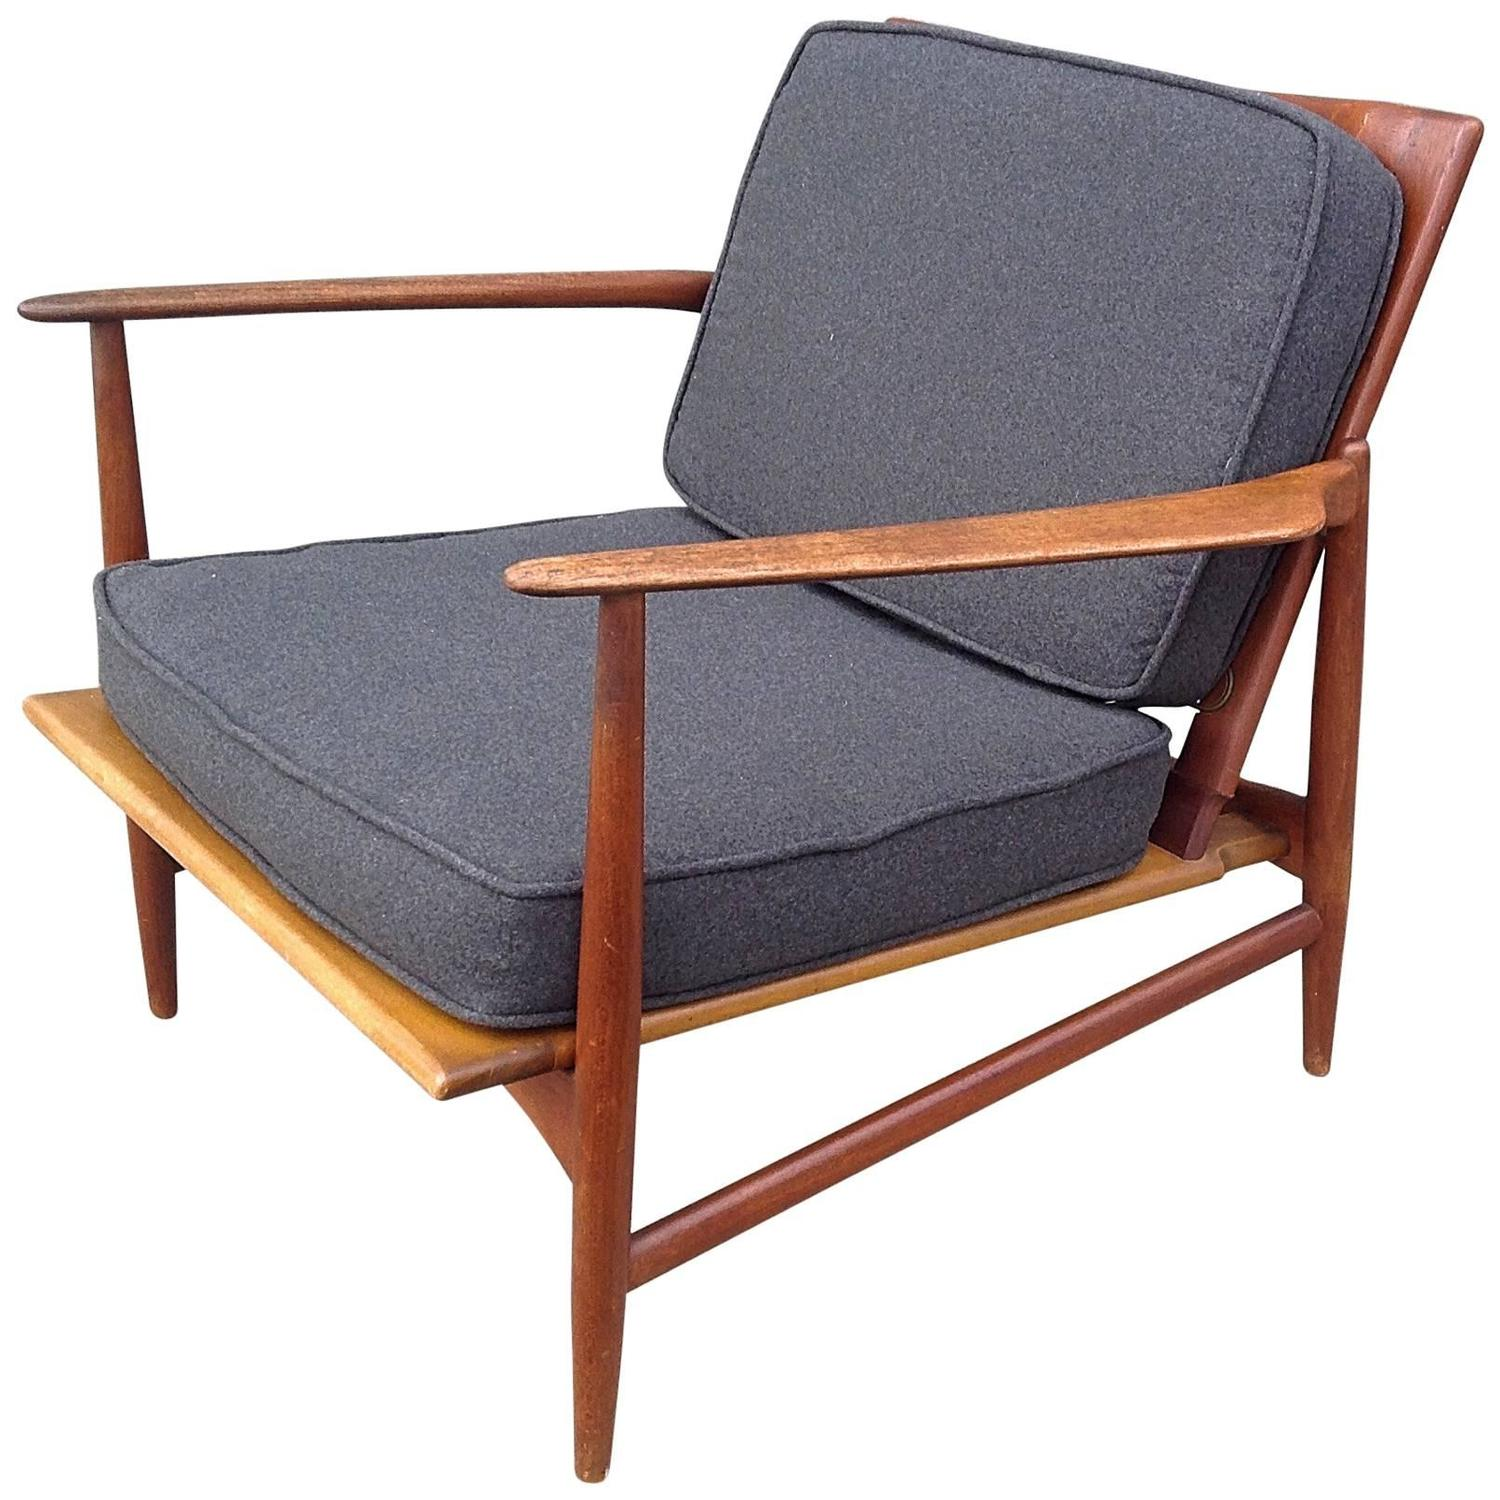 Selig Lounge Chair Ib Kofod Larsen For Selig Teak Lounge Chair For Sale At